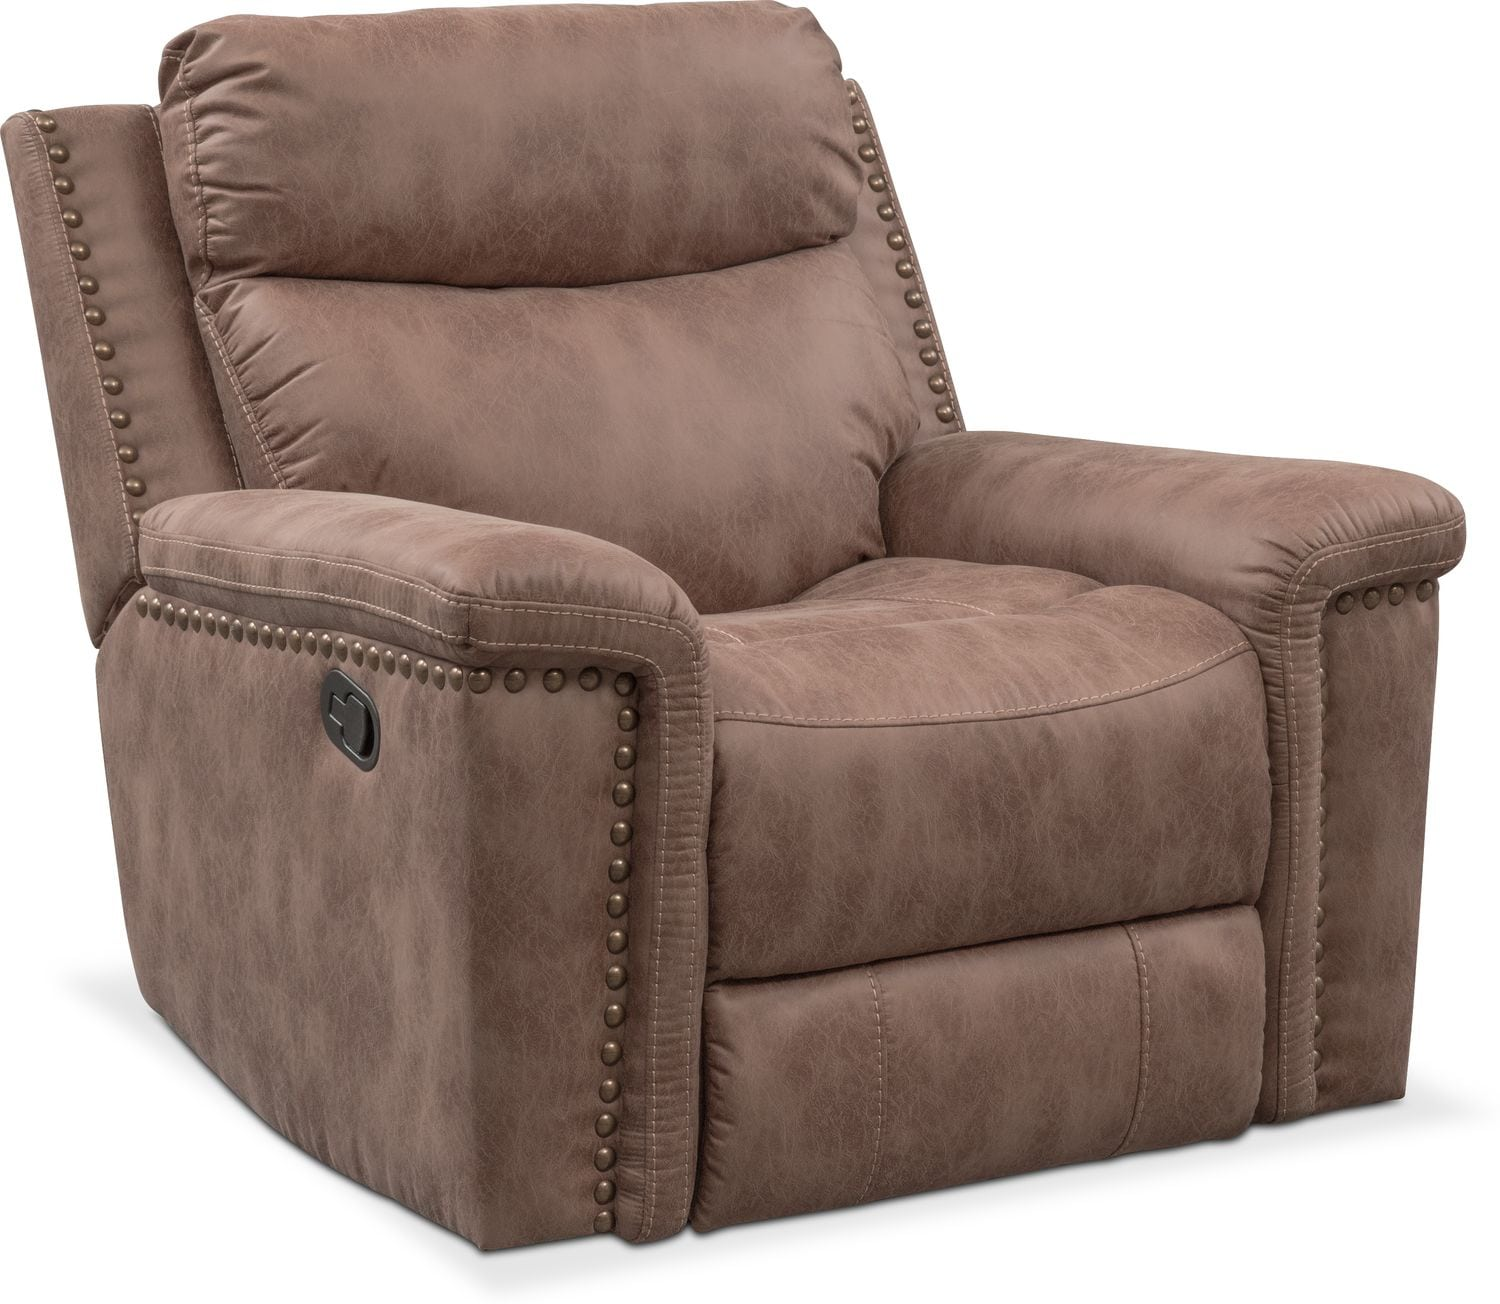 Living Room Furniture - Montana Manual Recliner